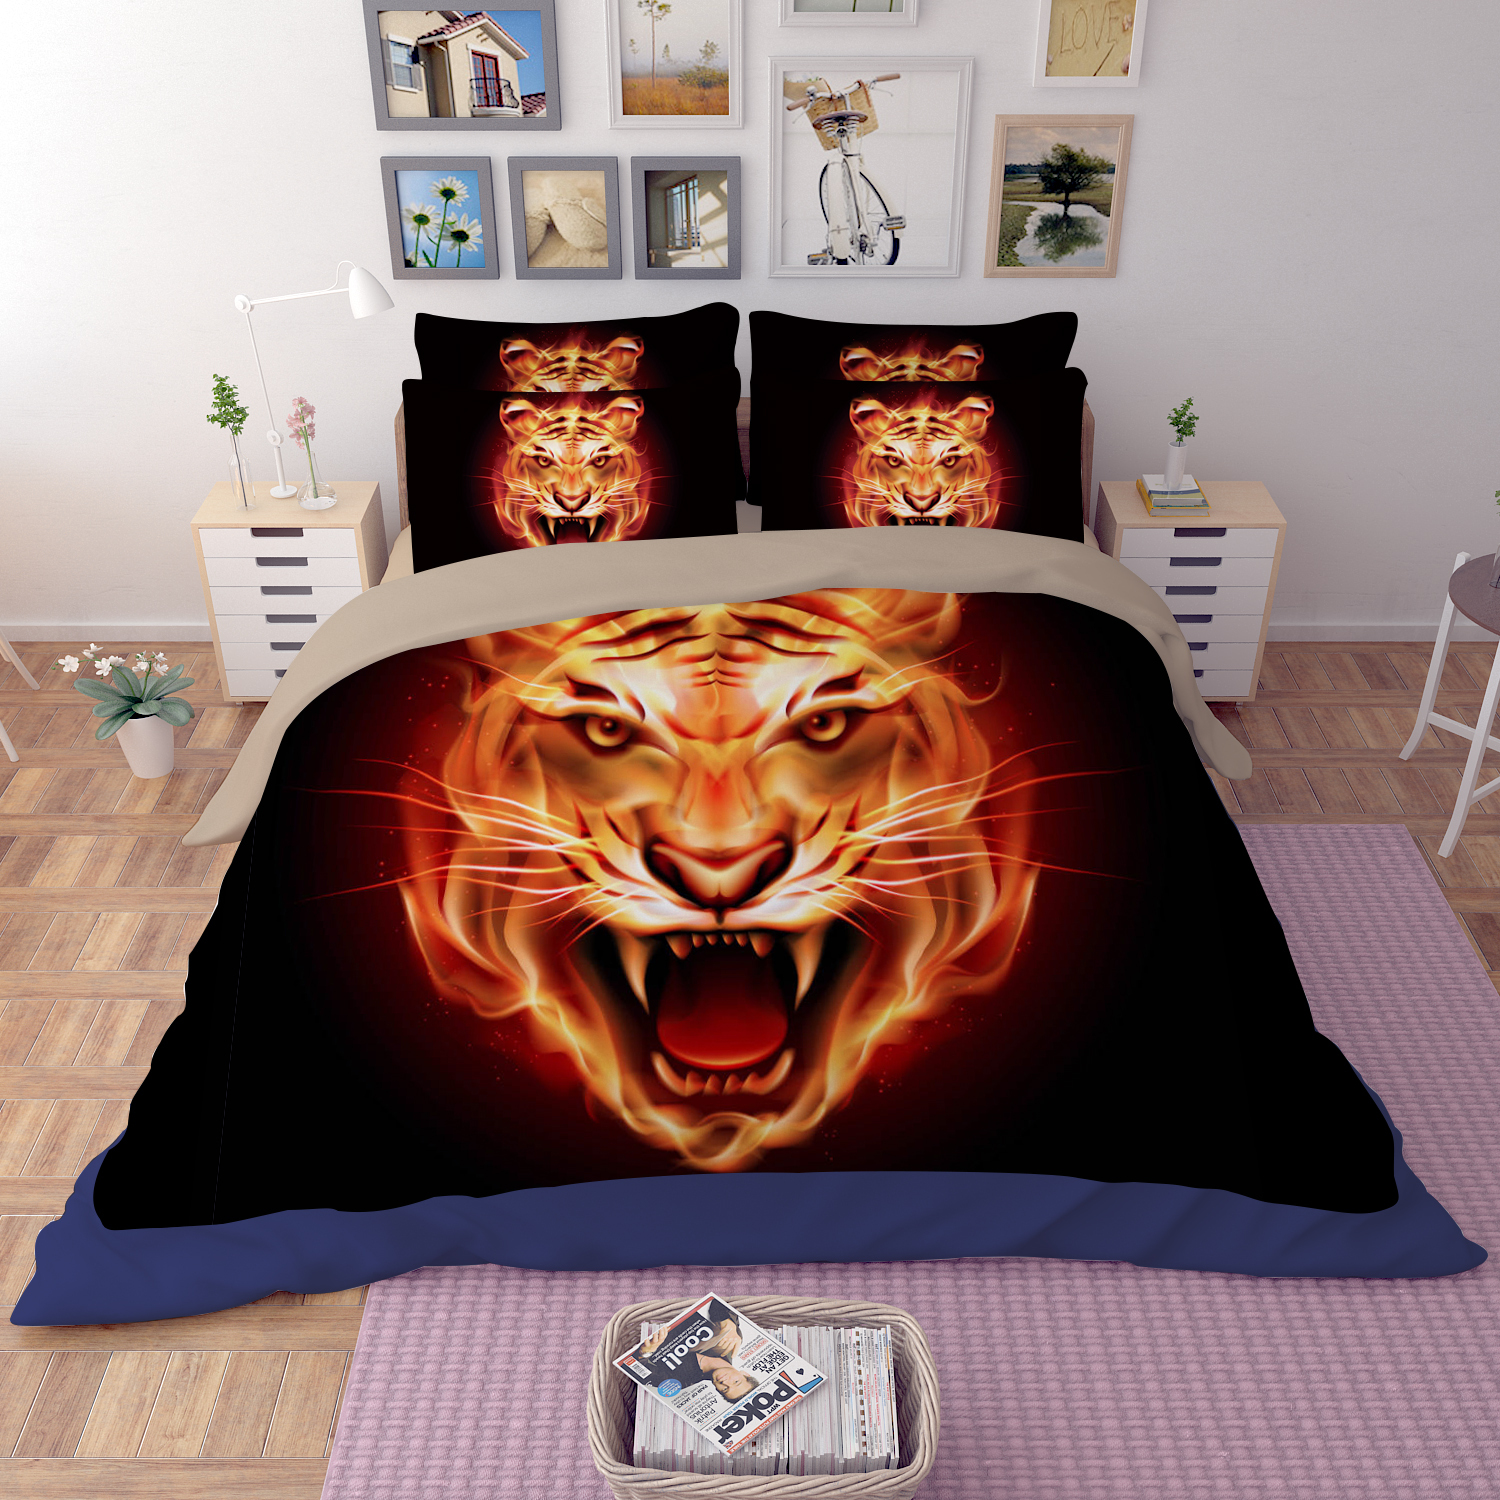 Microfiber 3D Printing Bedding Sets,Fired Tiger Bedding sets,Kid's bedding sets